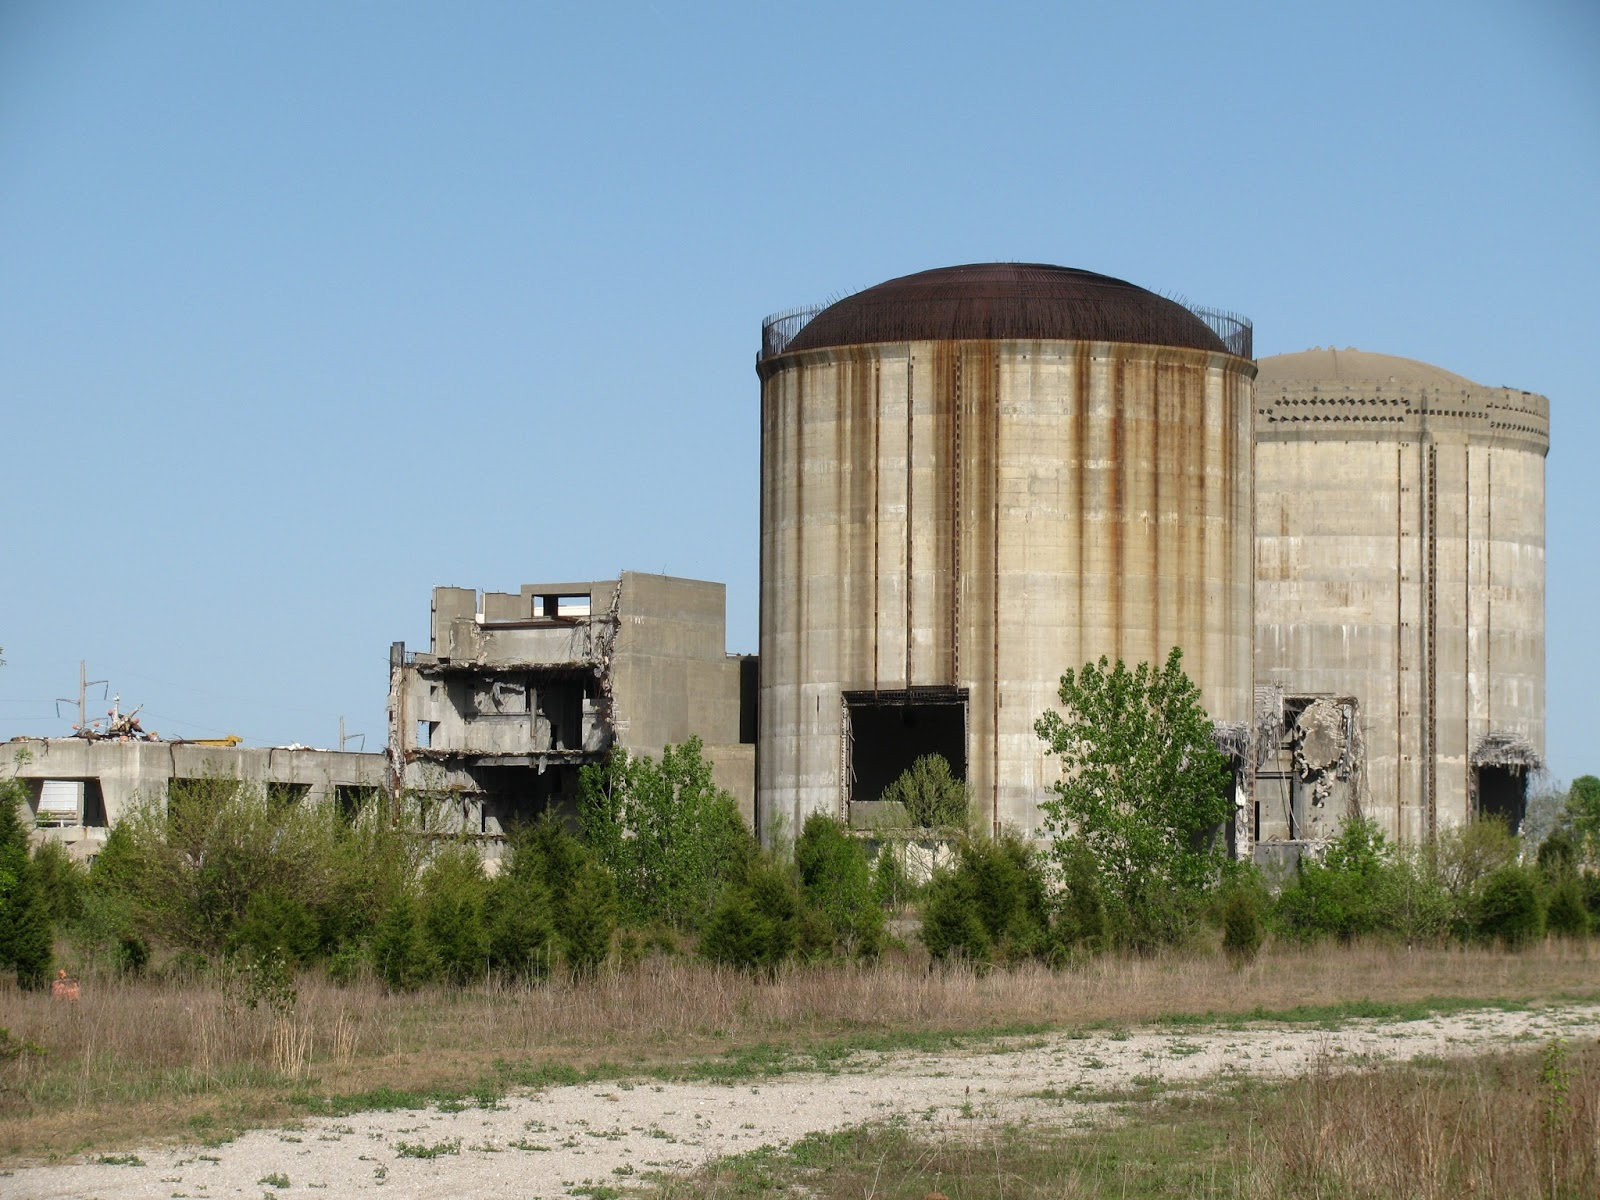 Eerie Indiana Abandoned Marble Hill Nuclear Power Plant